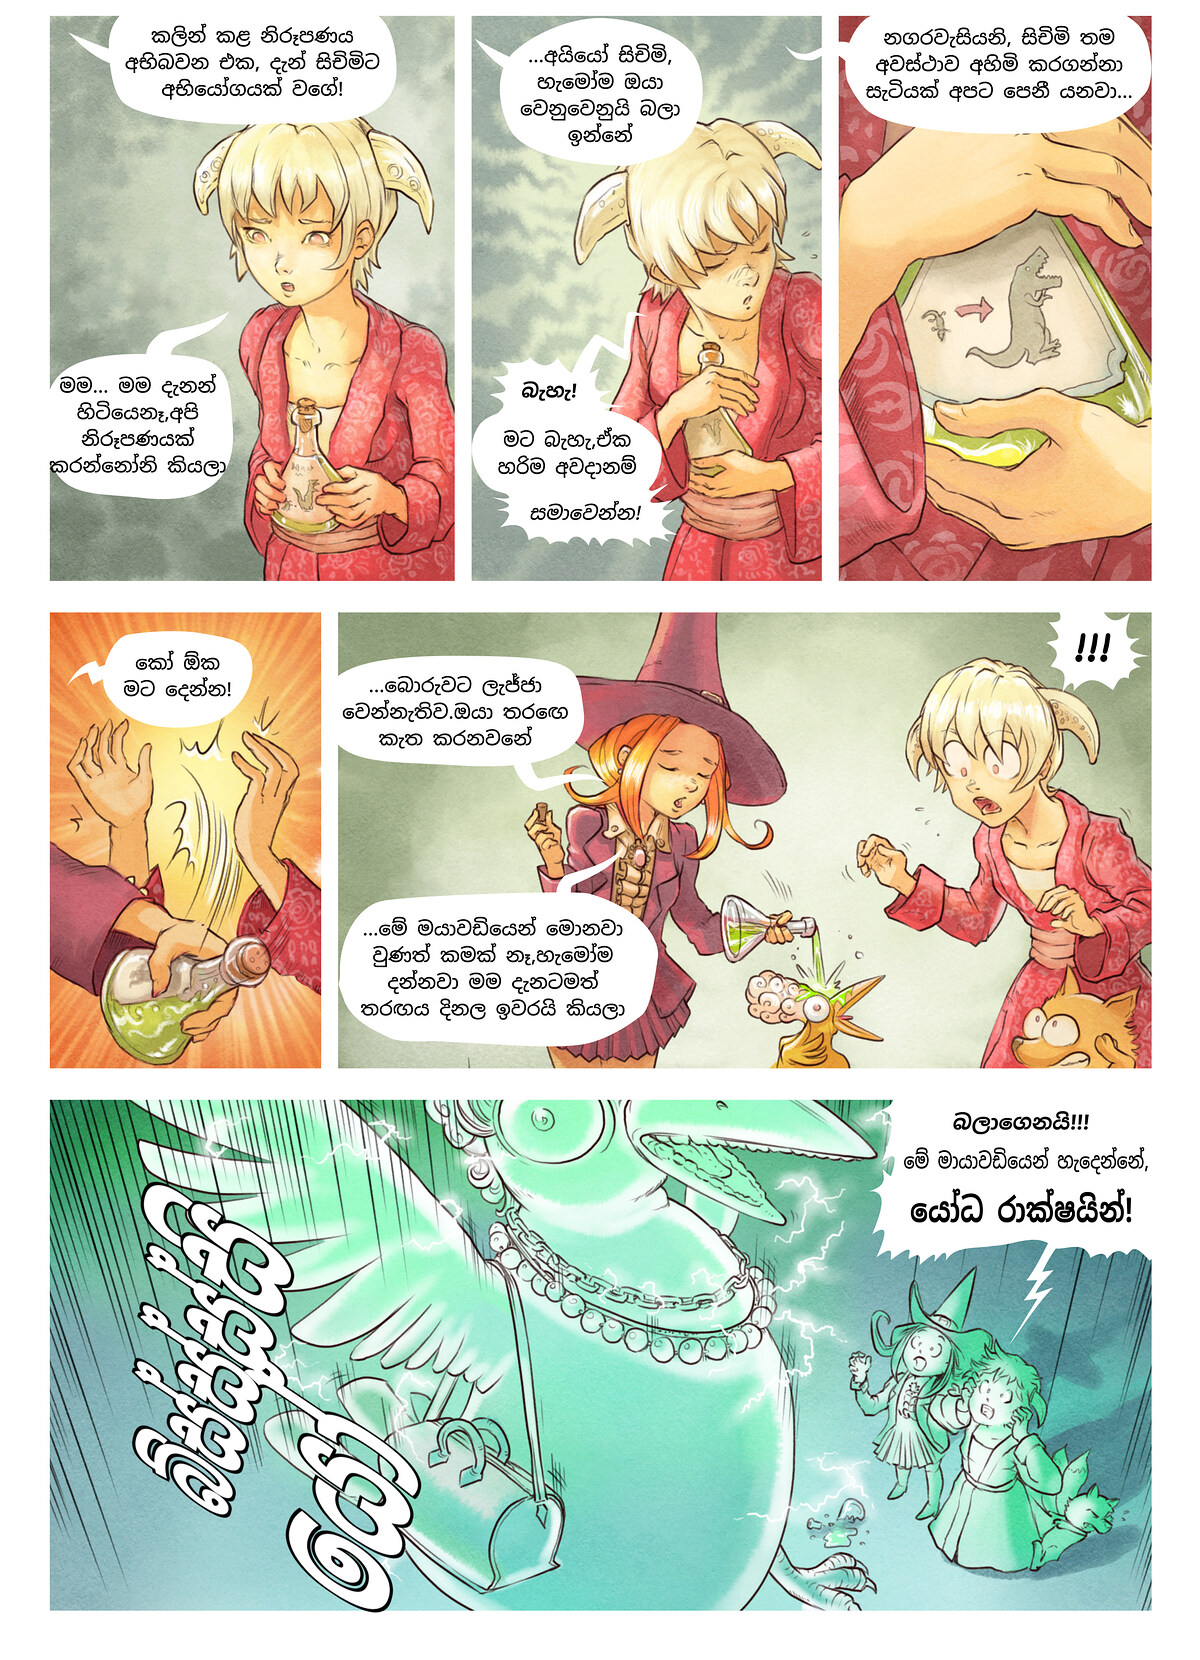 A webcomic page of Pepper&Carrot, episode 6 [si], page 6